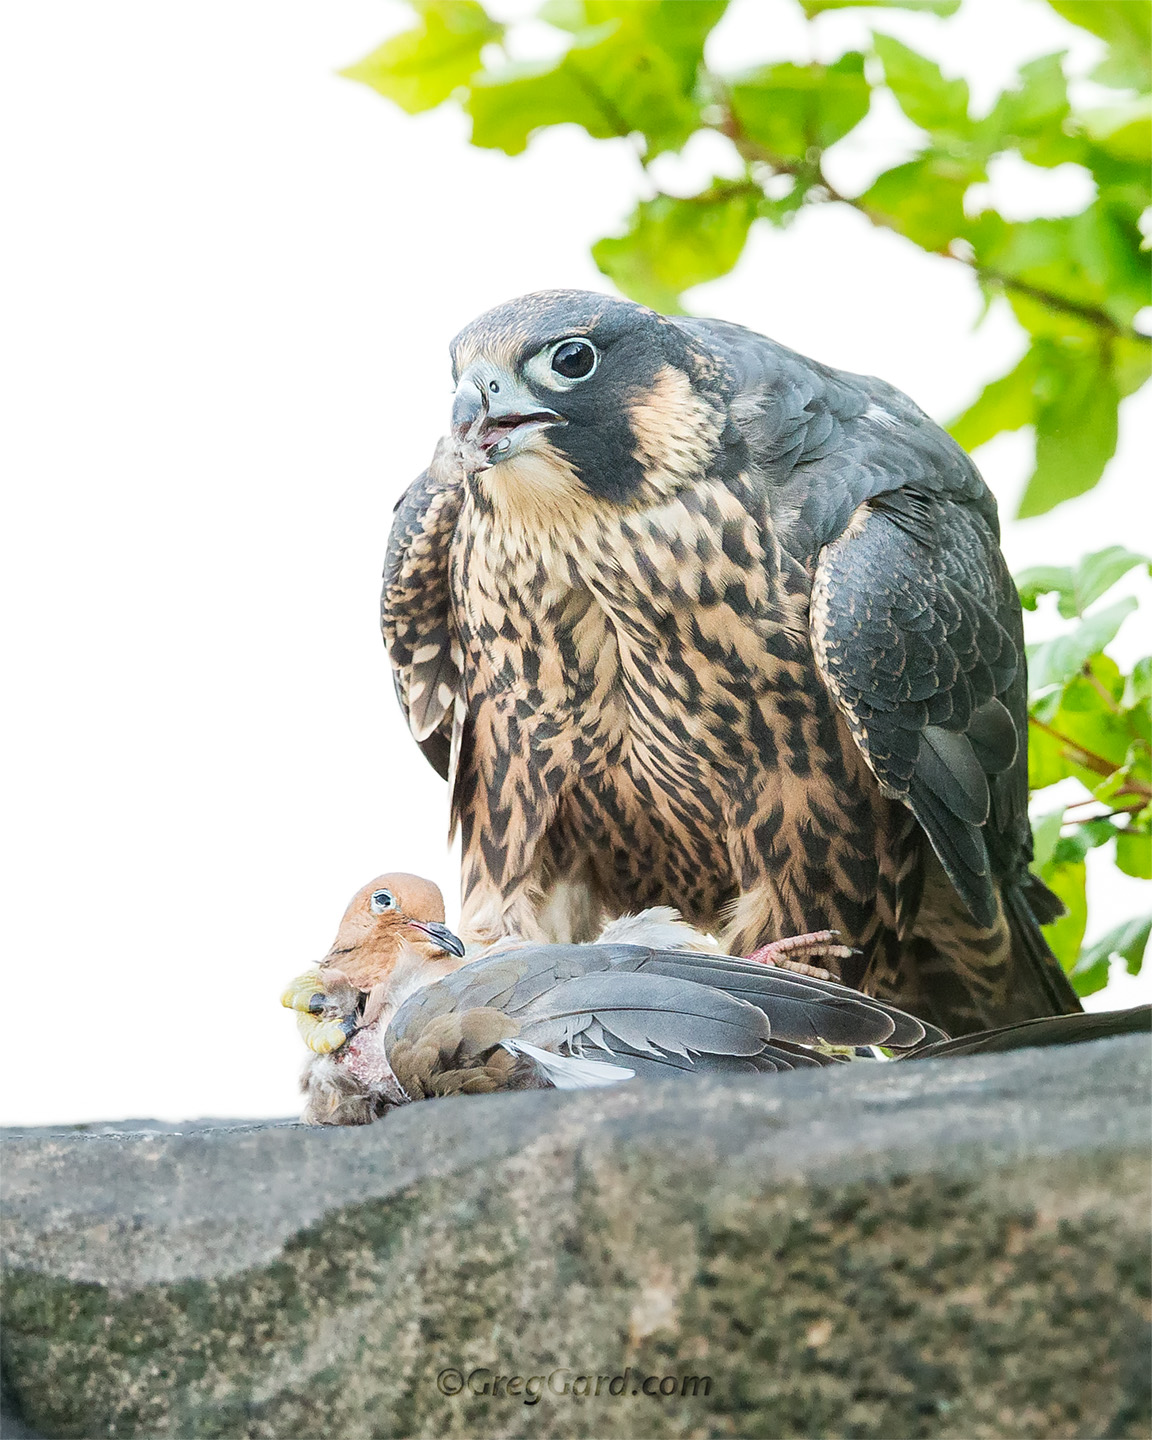 Close-up look on the young Peregrine Falcon  holding a Mourning Dove in its talons - New Jersey